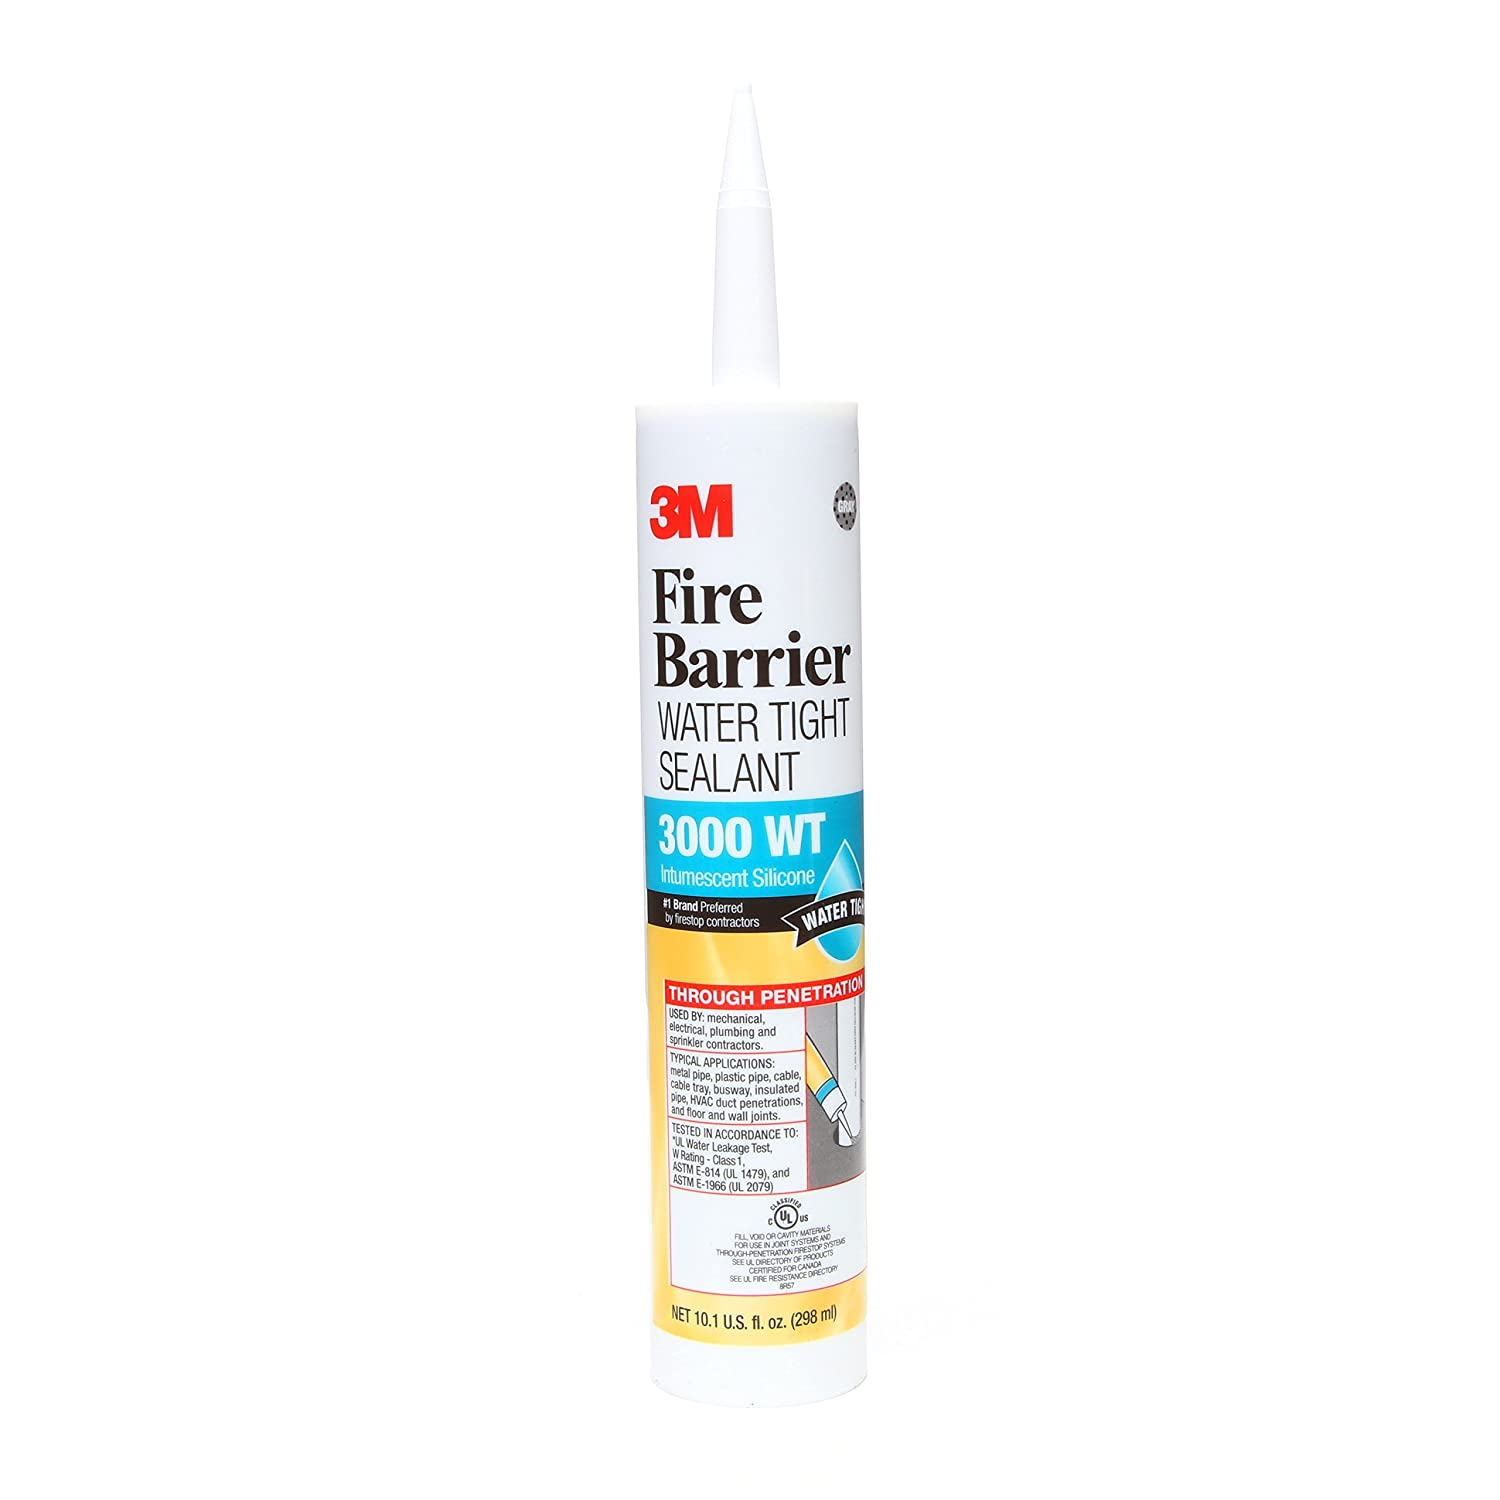 Image of 3M Fire Barrier Water Tight Sealant 3000 WT, Gray, 10.1 fl oz Cartridge Home Improvements